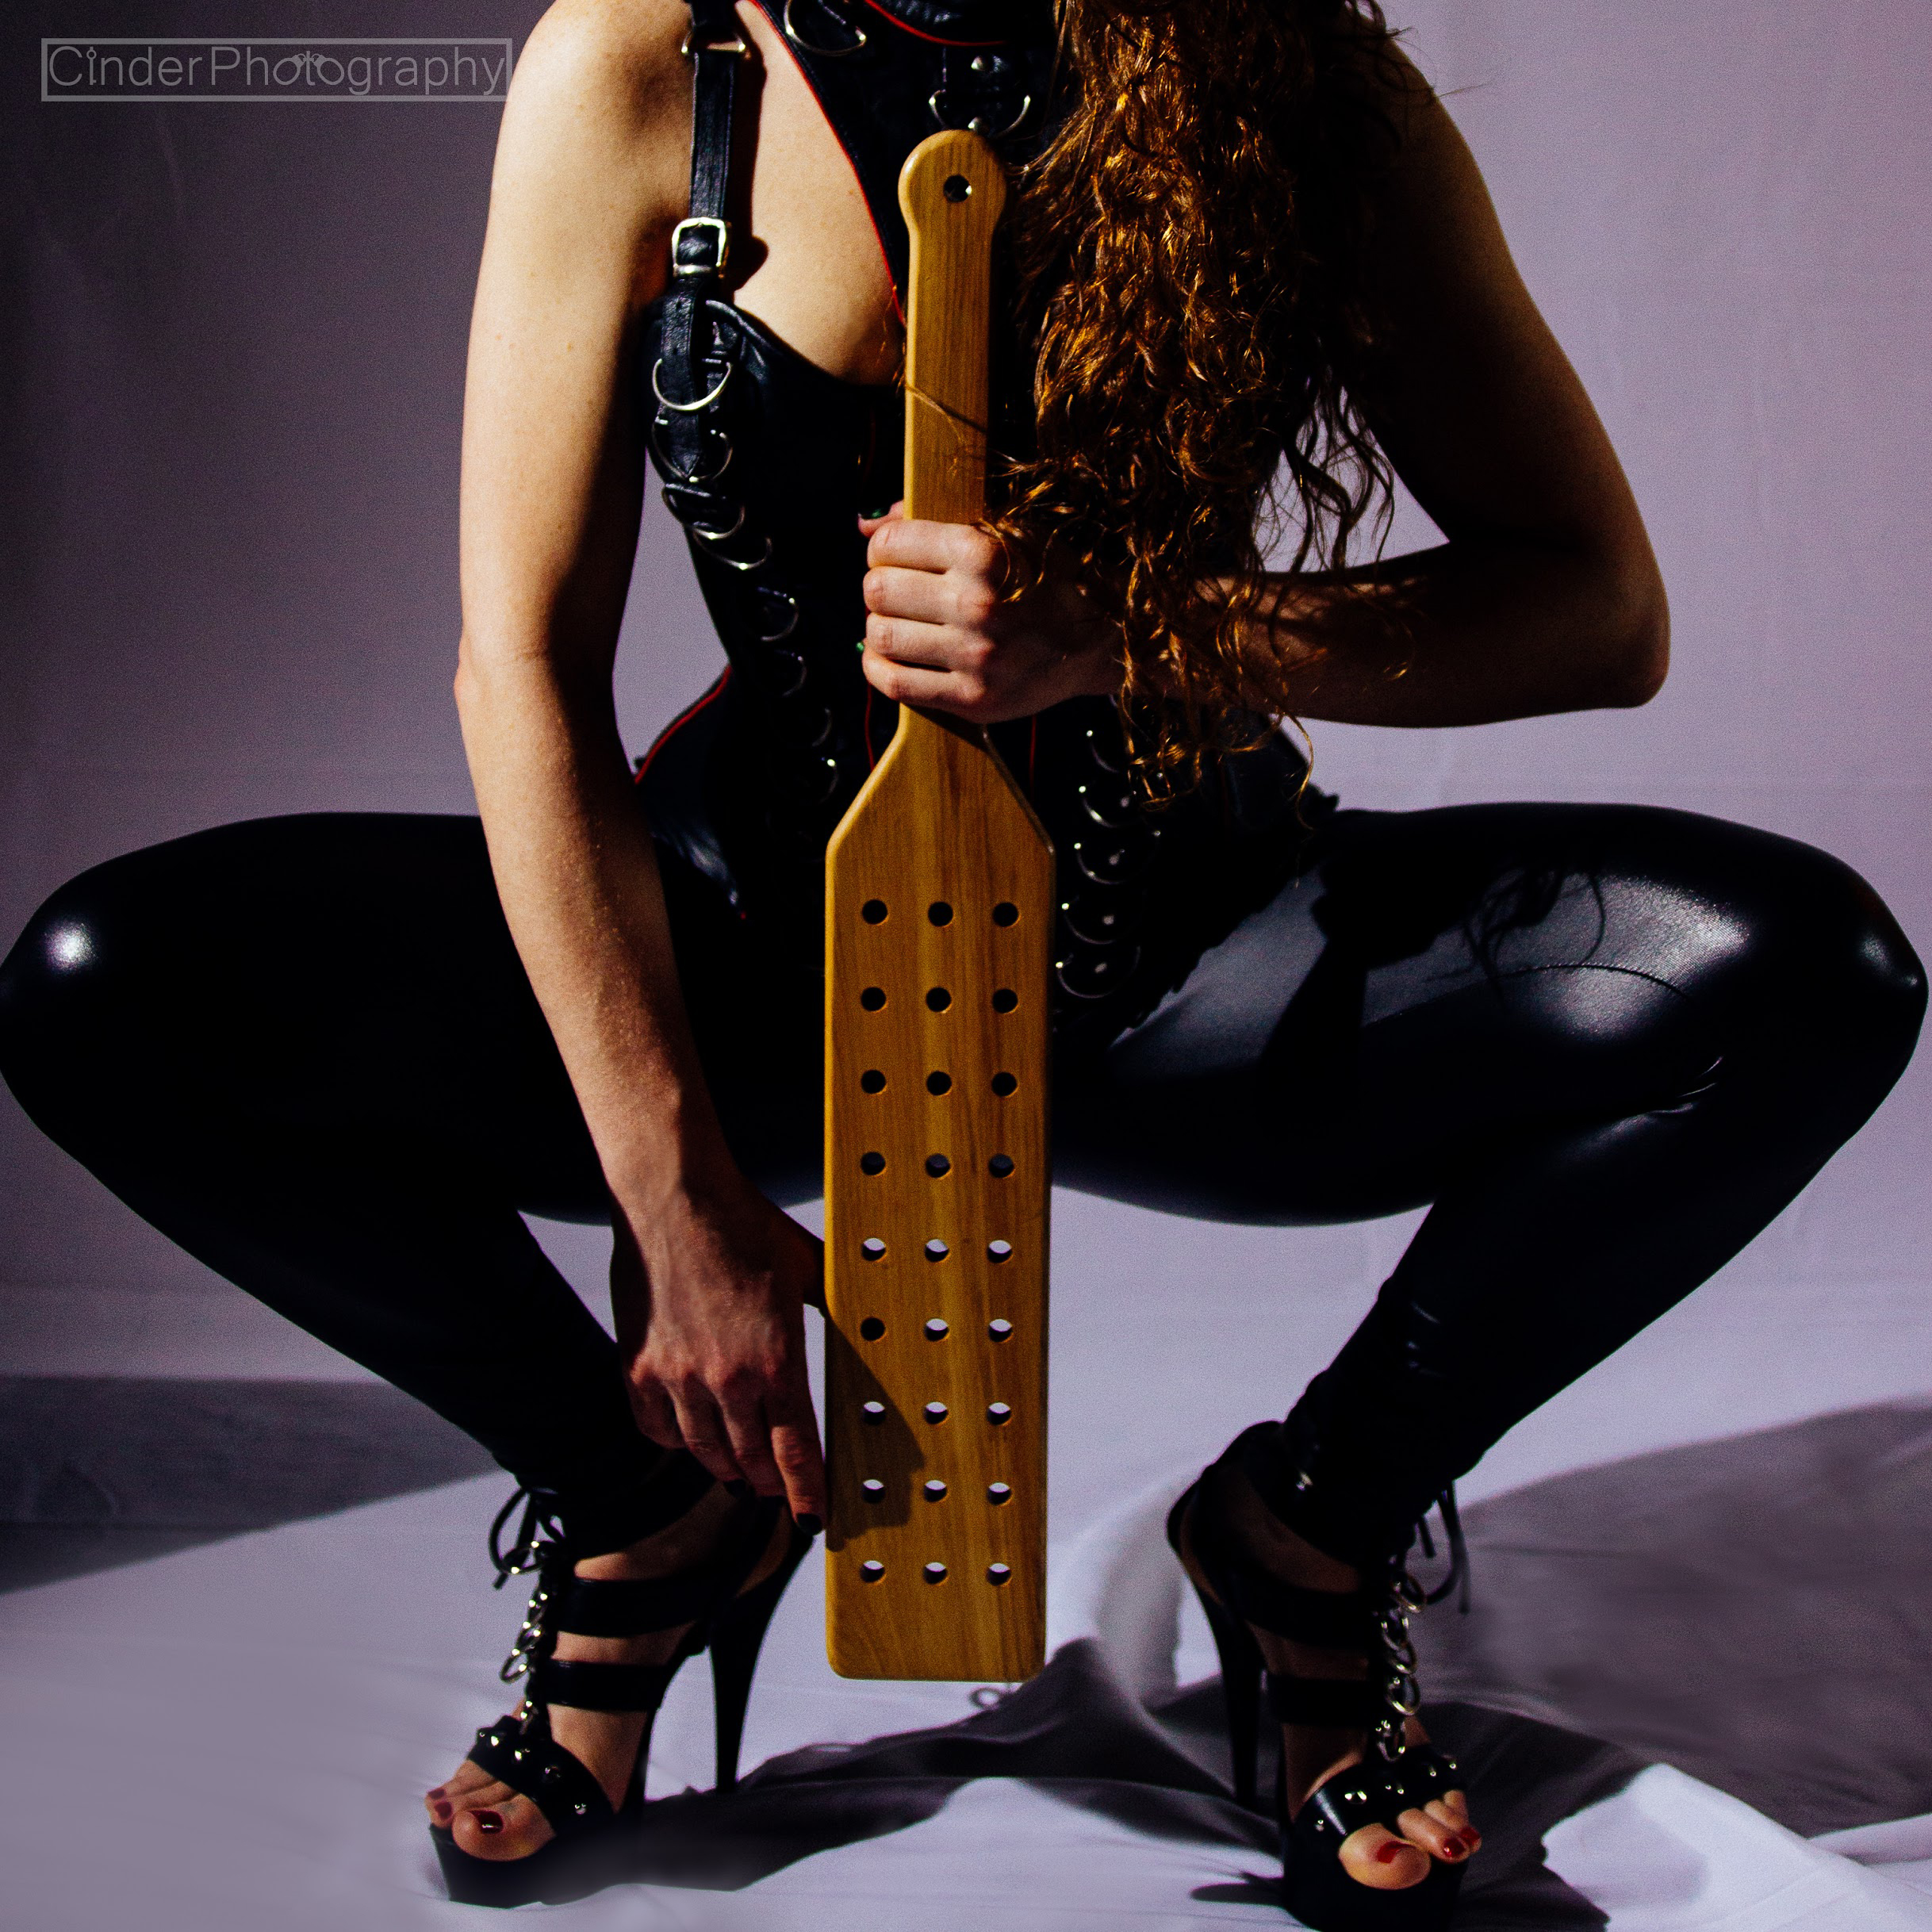 Chicago dominatrix holding long wooden paddle for corporal punishment discipline obedience training masochist sadist sadomasochism